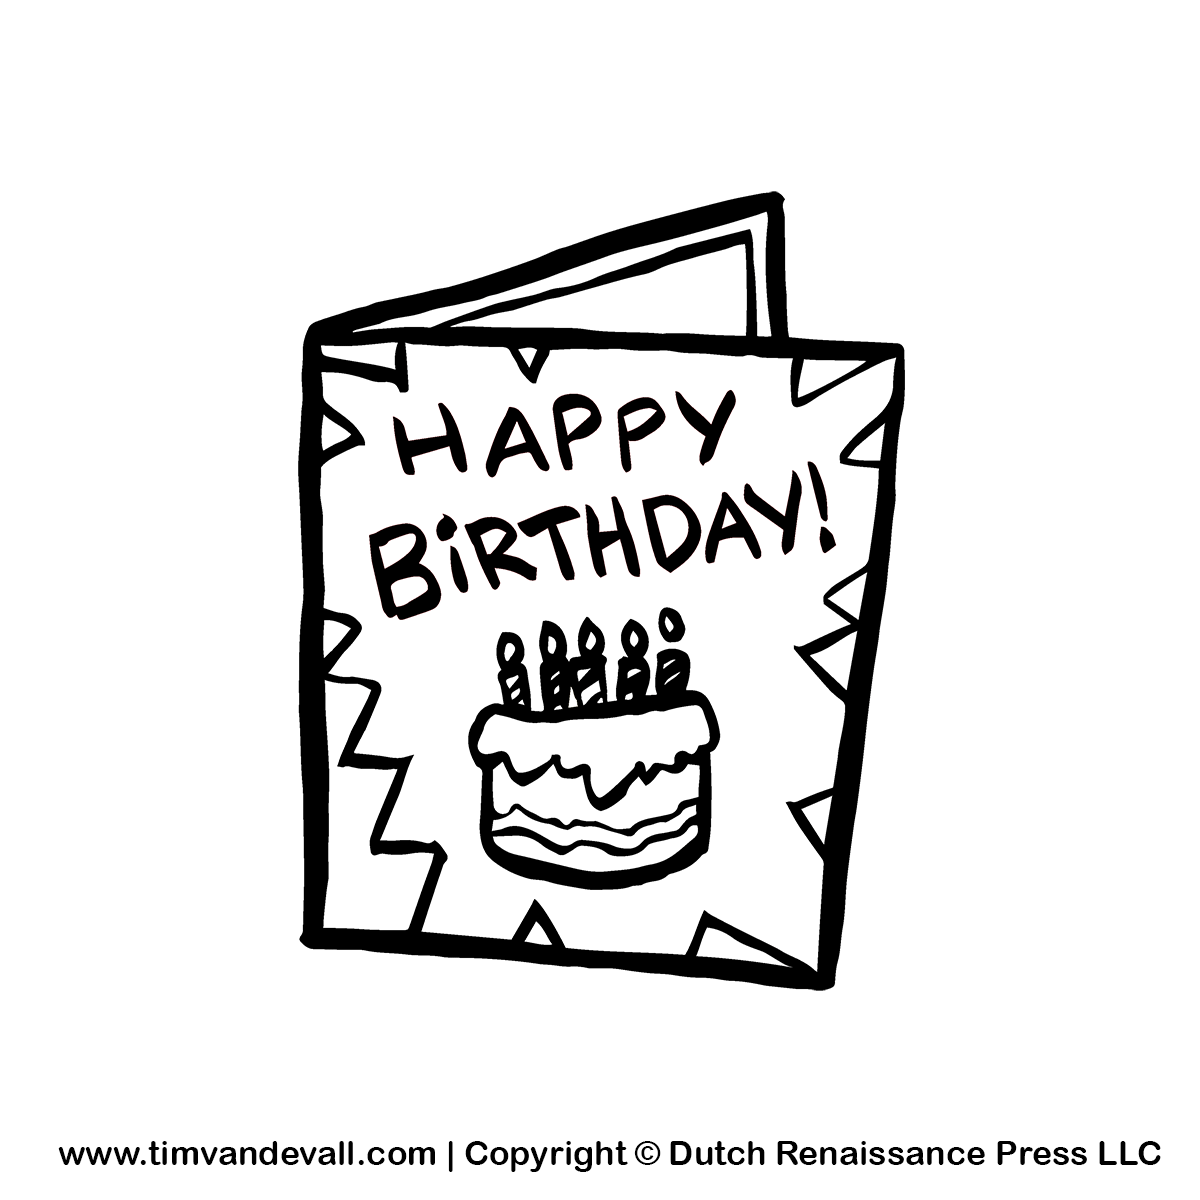 Clipart greeting cards graphic transparent stock Free Birthday Card Cliparts, Download Free Clip Art, Free Clip Art ... graphic transparent stock